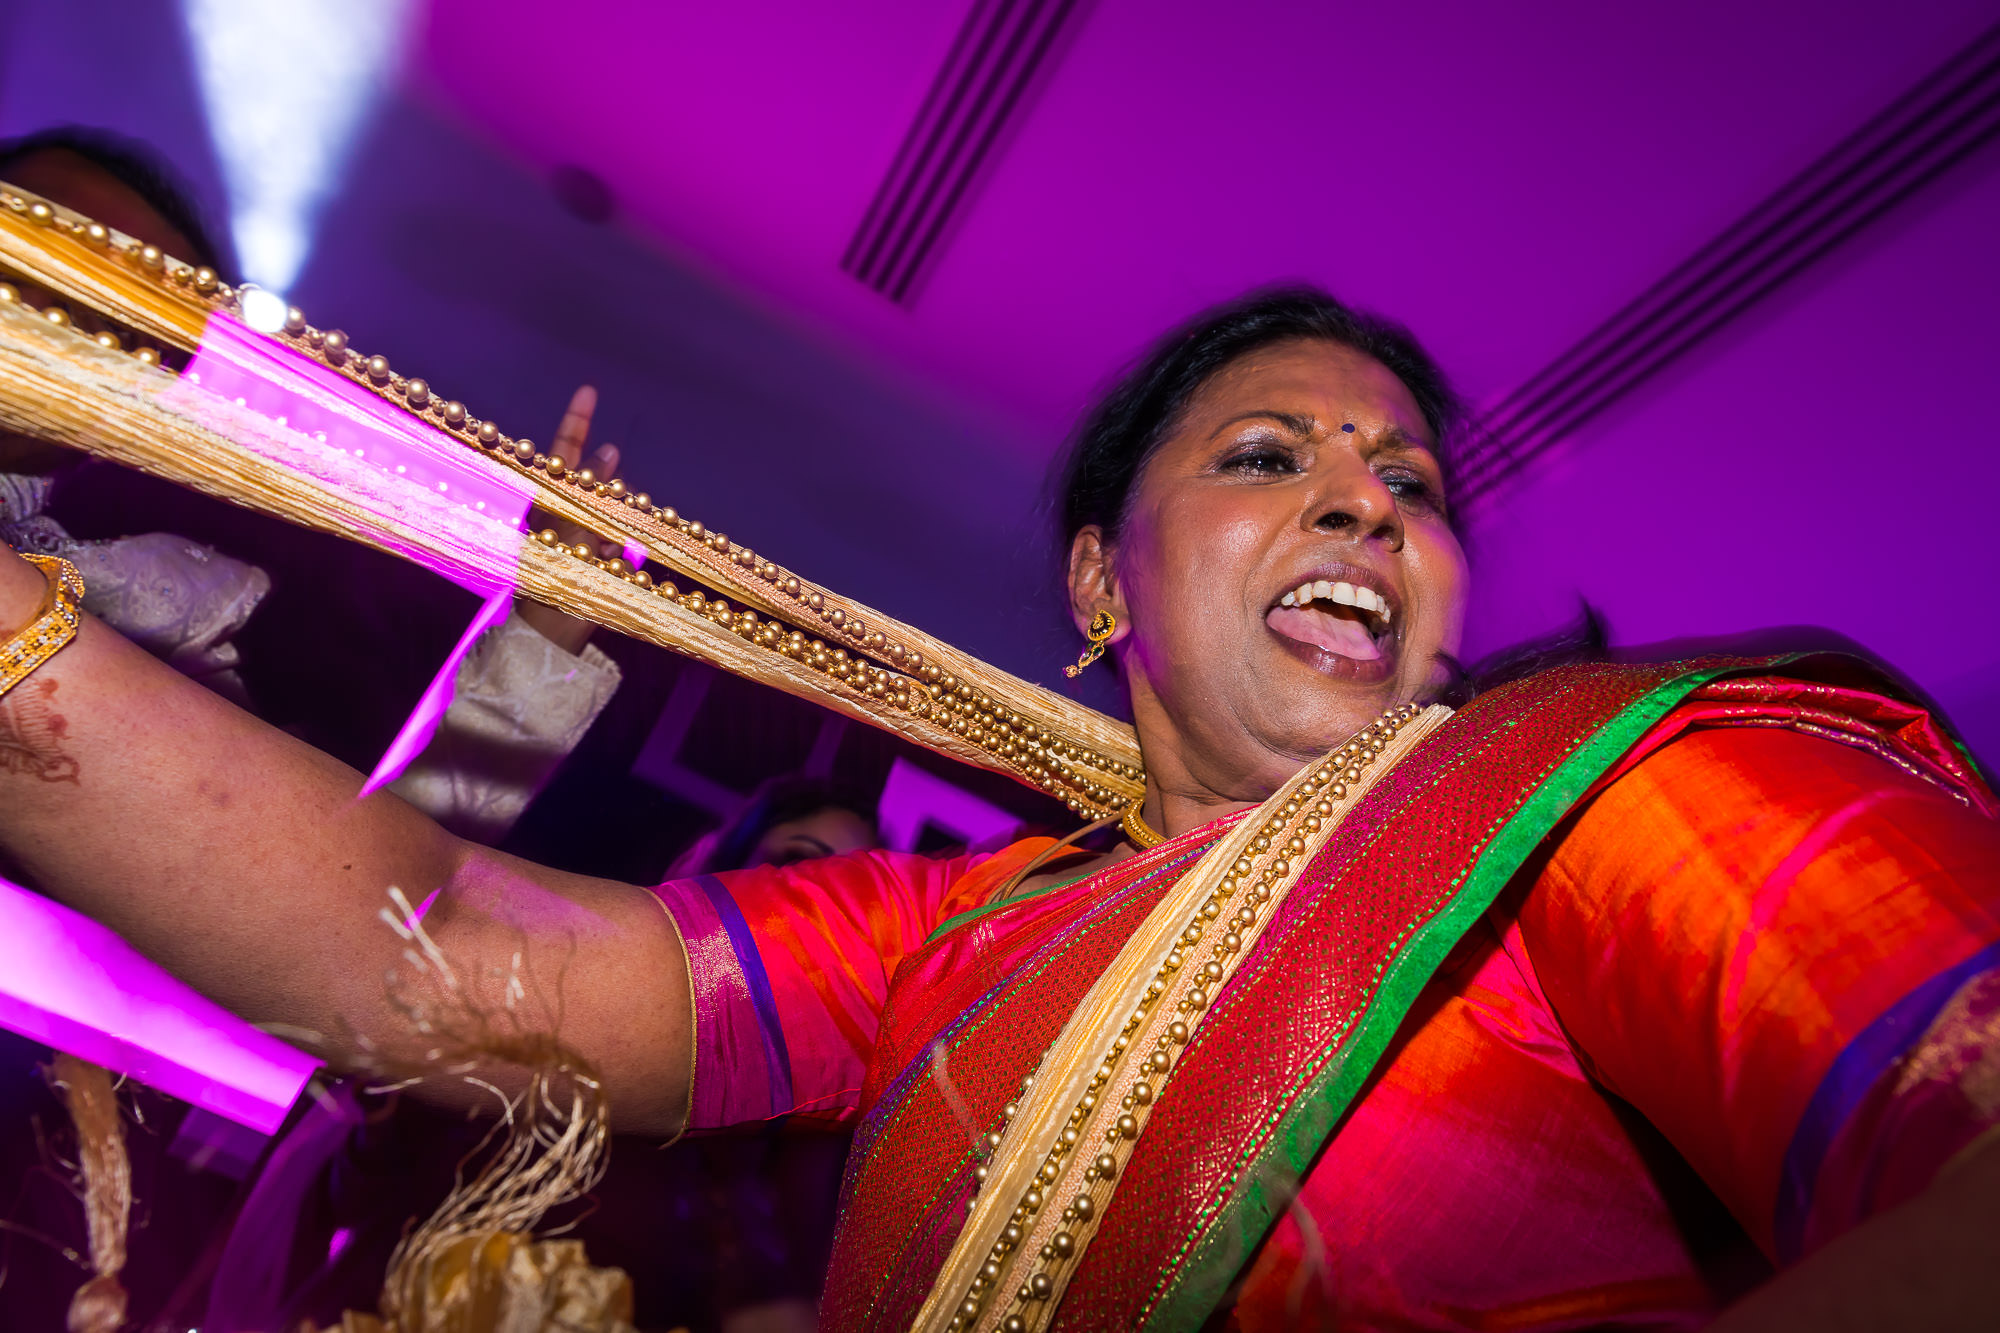 asian-wedding-hindu-tamil-photographer-heythorpe-oxford-0115.jpg